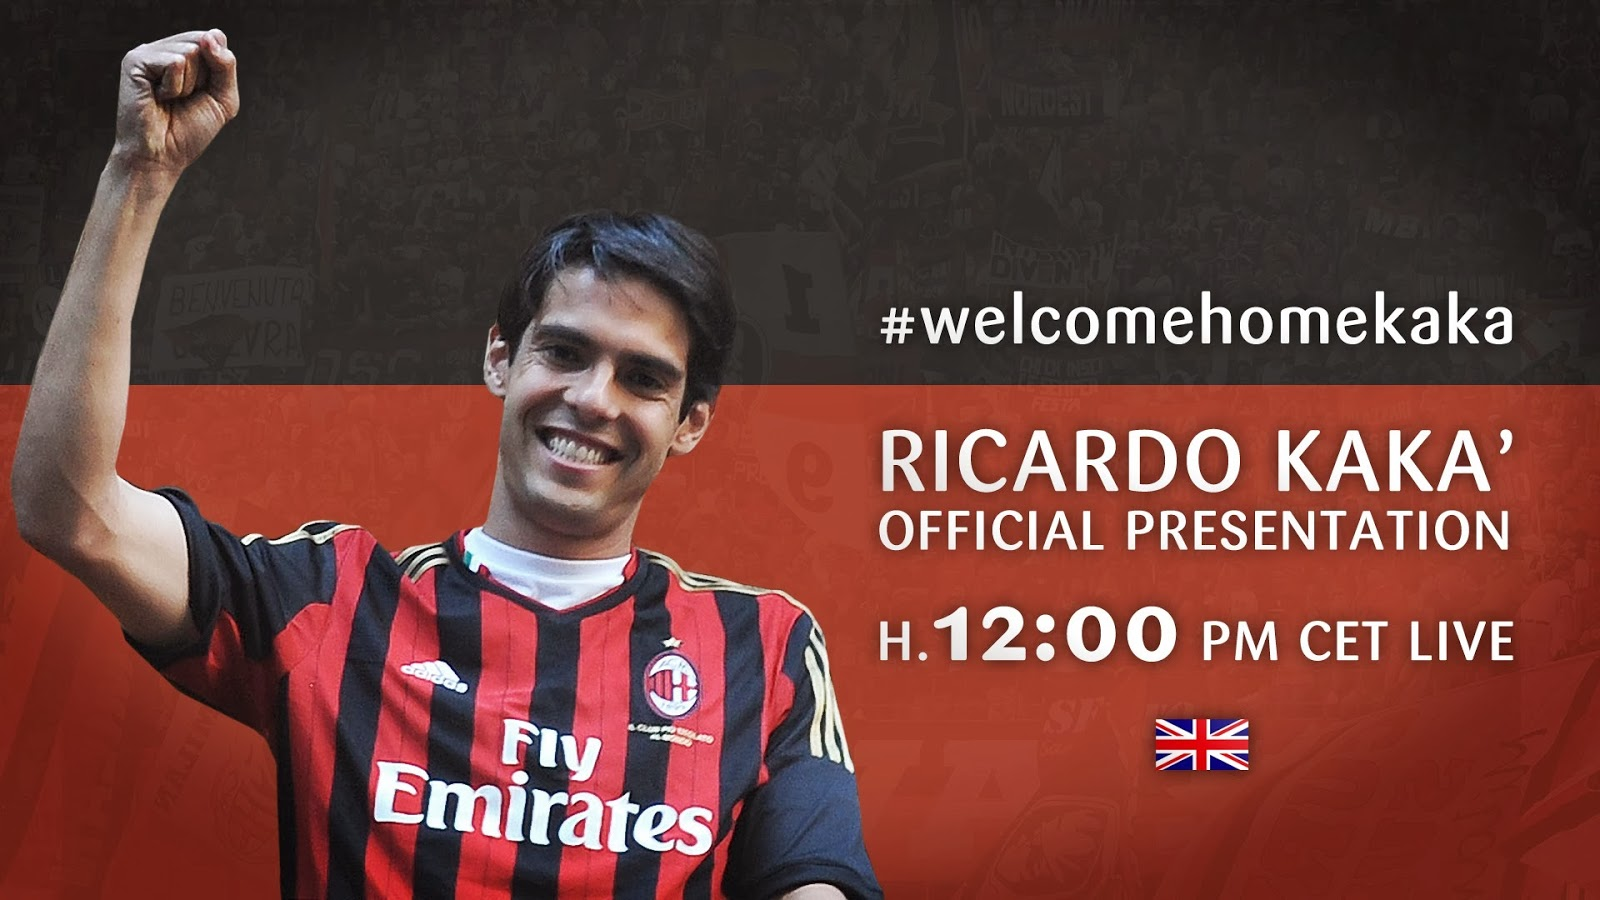 Welcome Home kaka - kaka wallpaper 2014